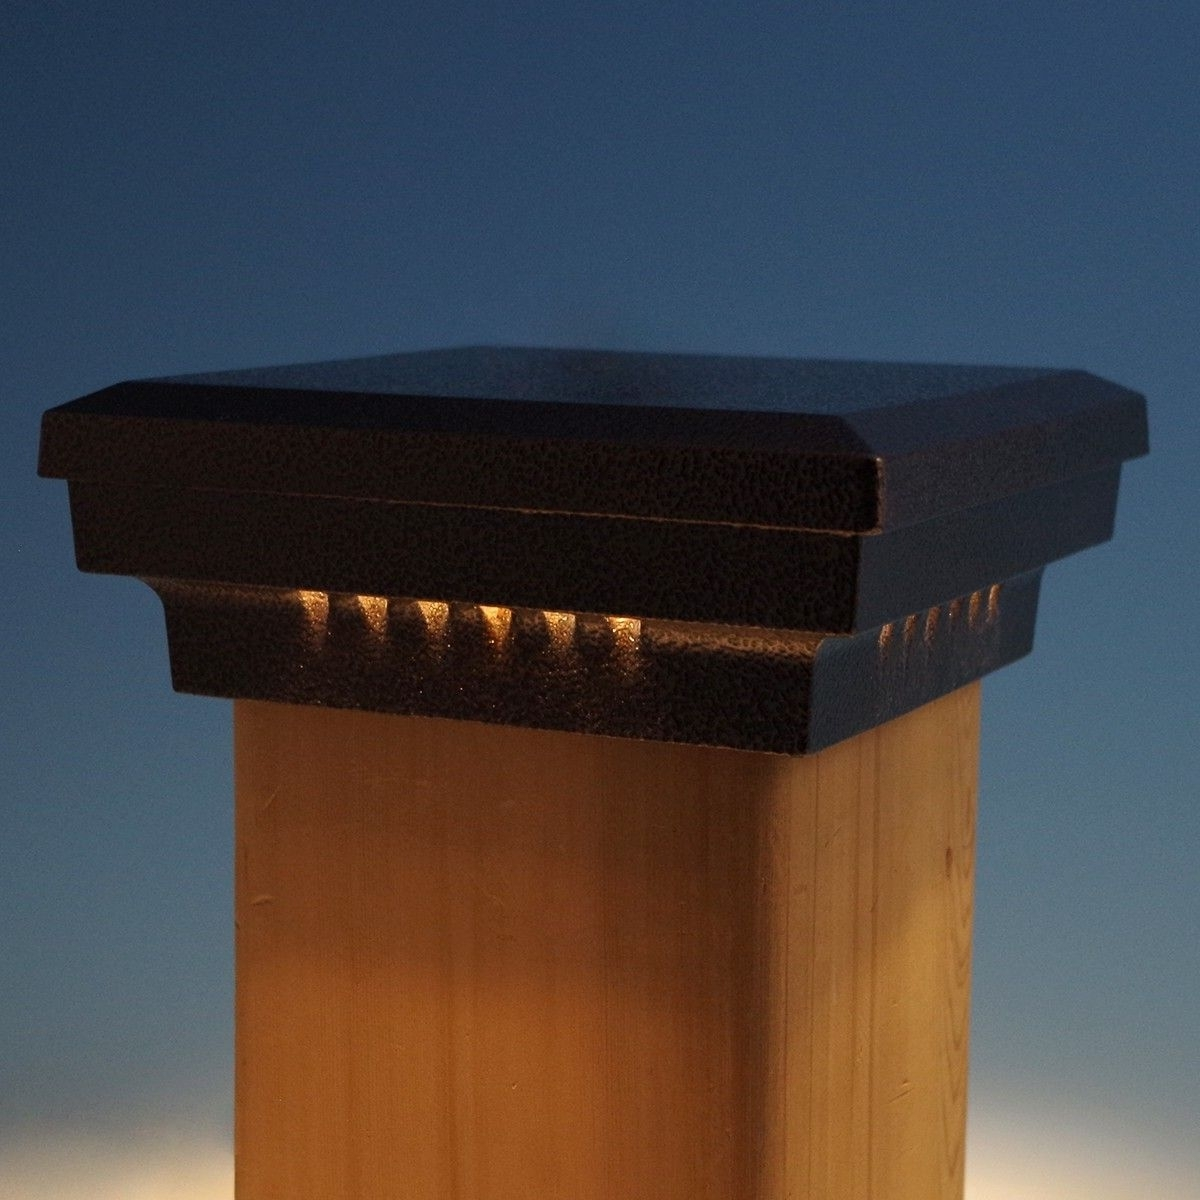 Lights, Fence Throughout Fashionable Low Voltage Led Post Lights (View 7 of 20)